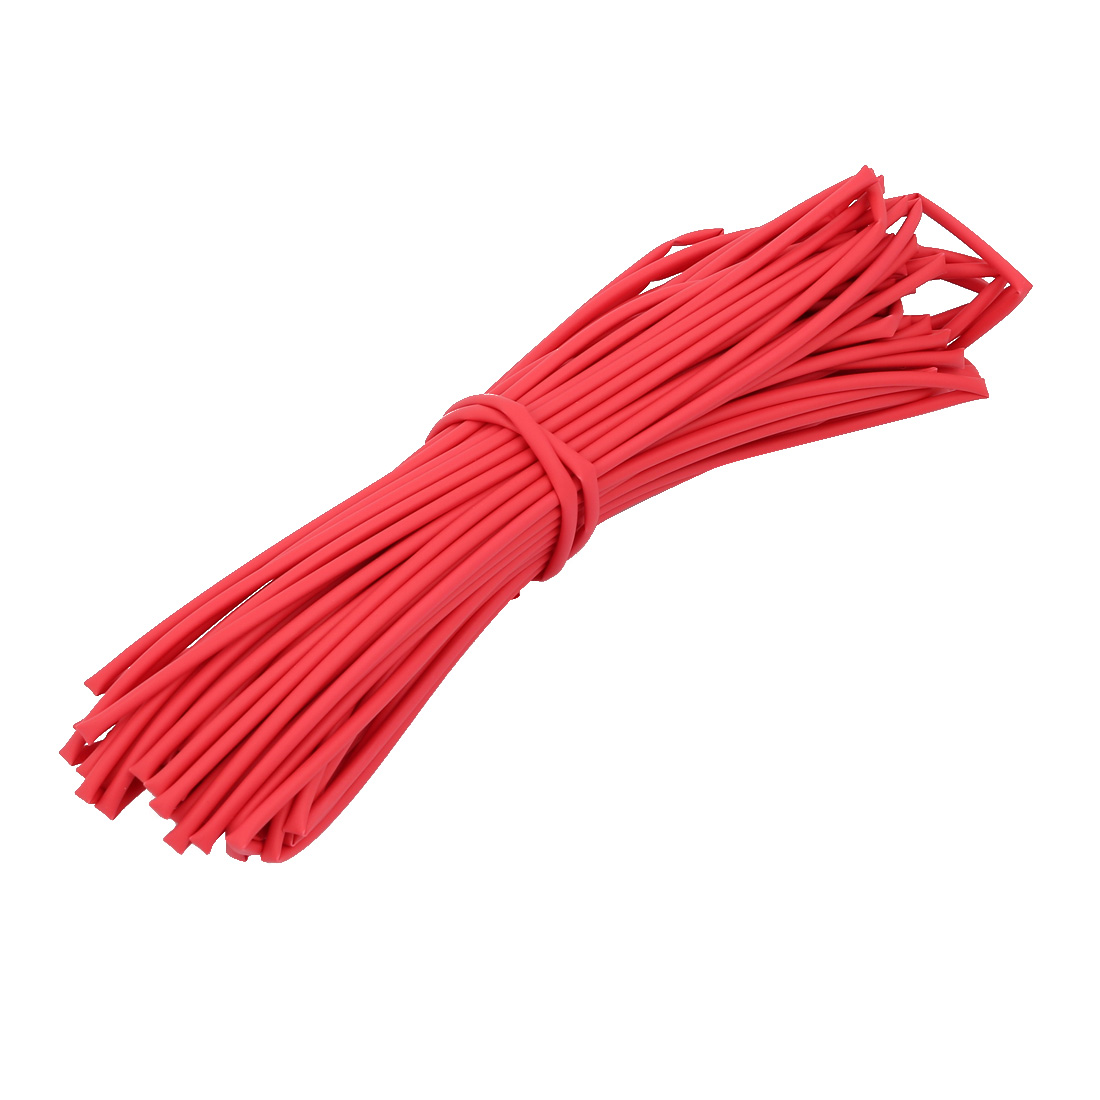 Heat Shrinkable Tube Wire Cable Sleeve 15 Meters Length 1.5mm Inner Dia Red